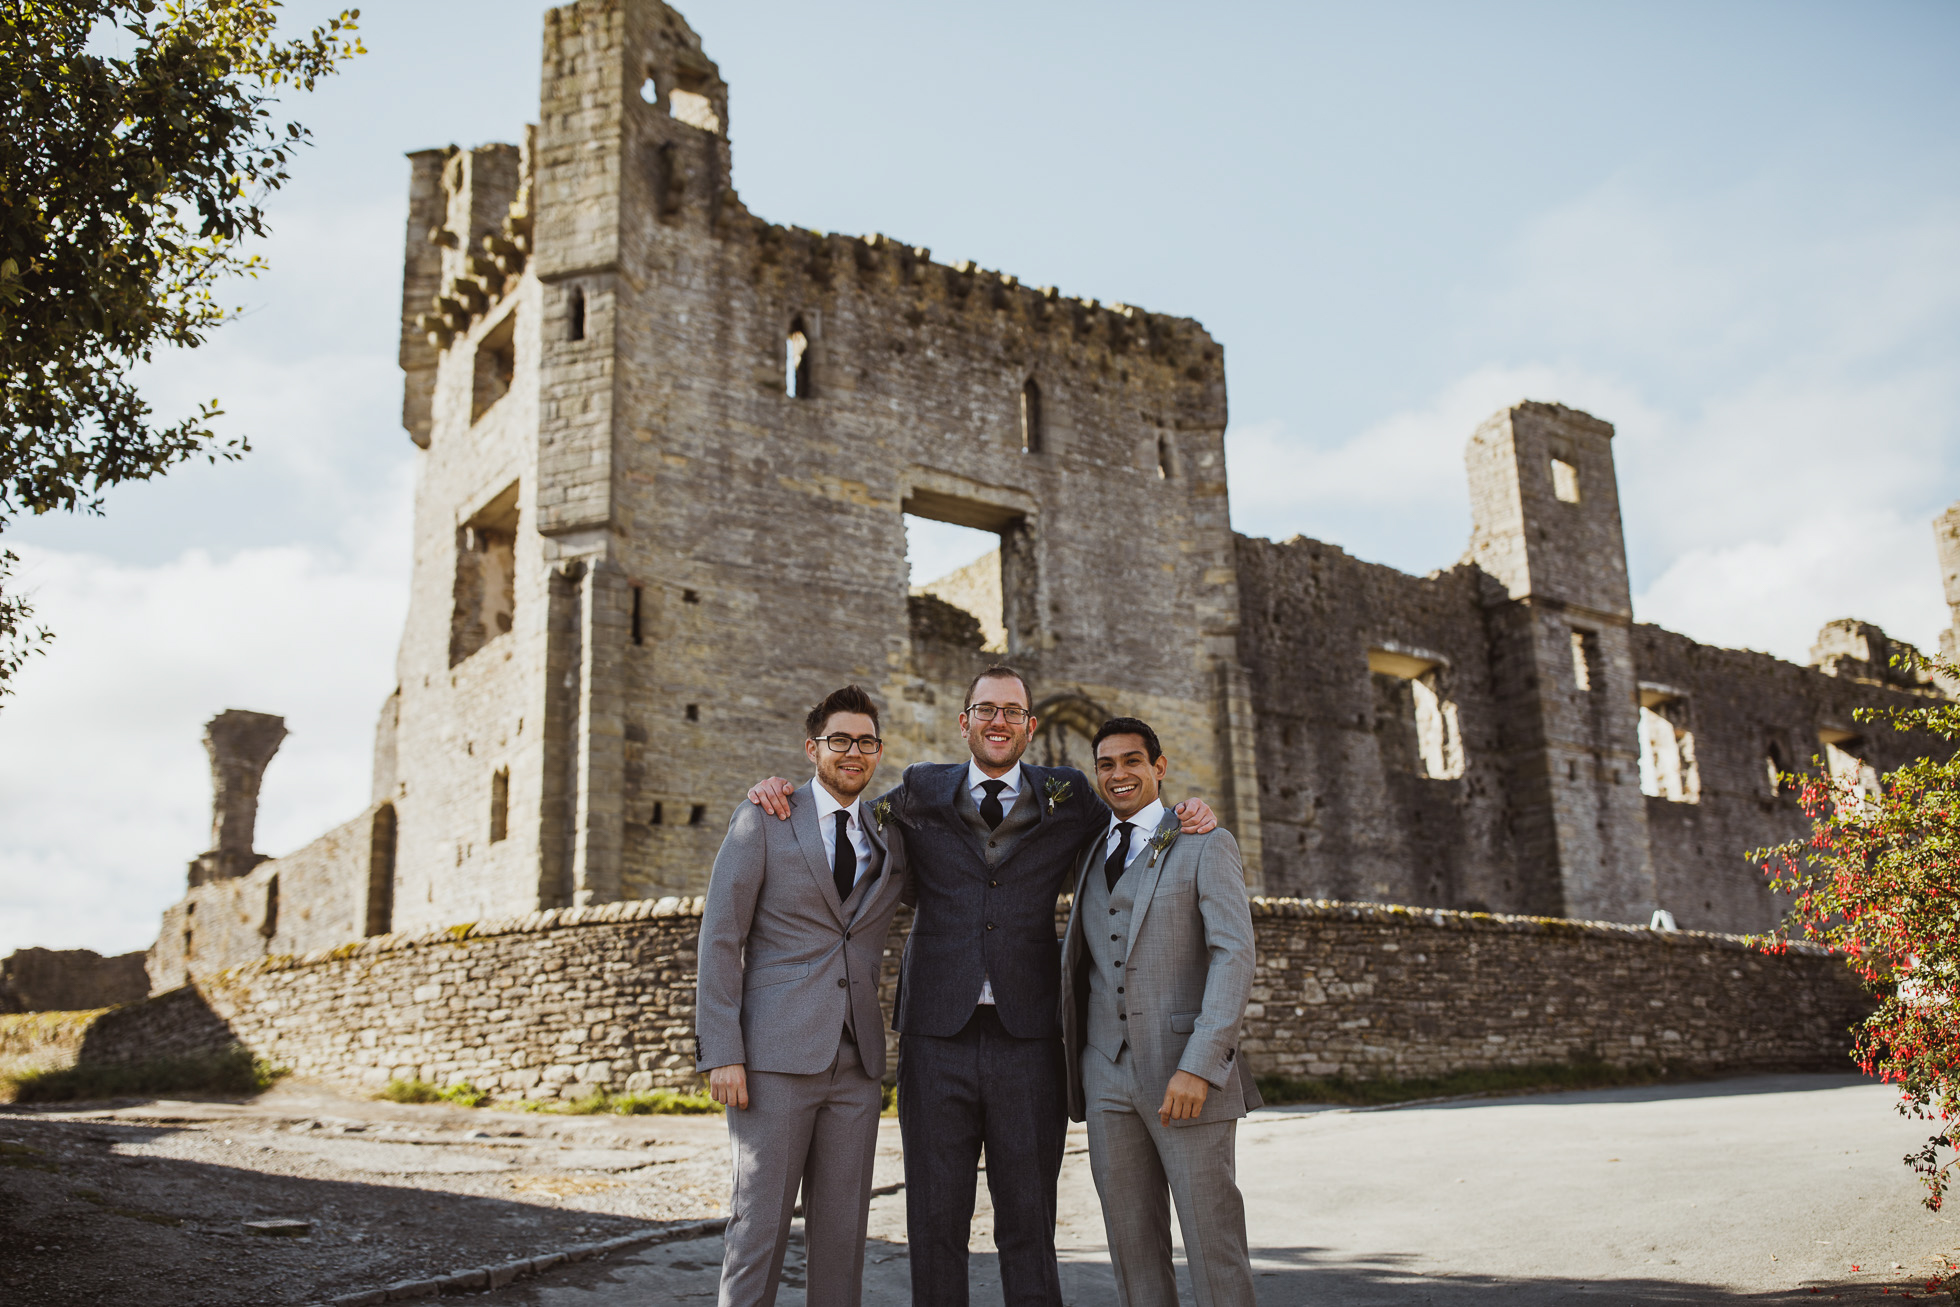 blue_lion_yorkshire_wedding_photographer-28.jpg